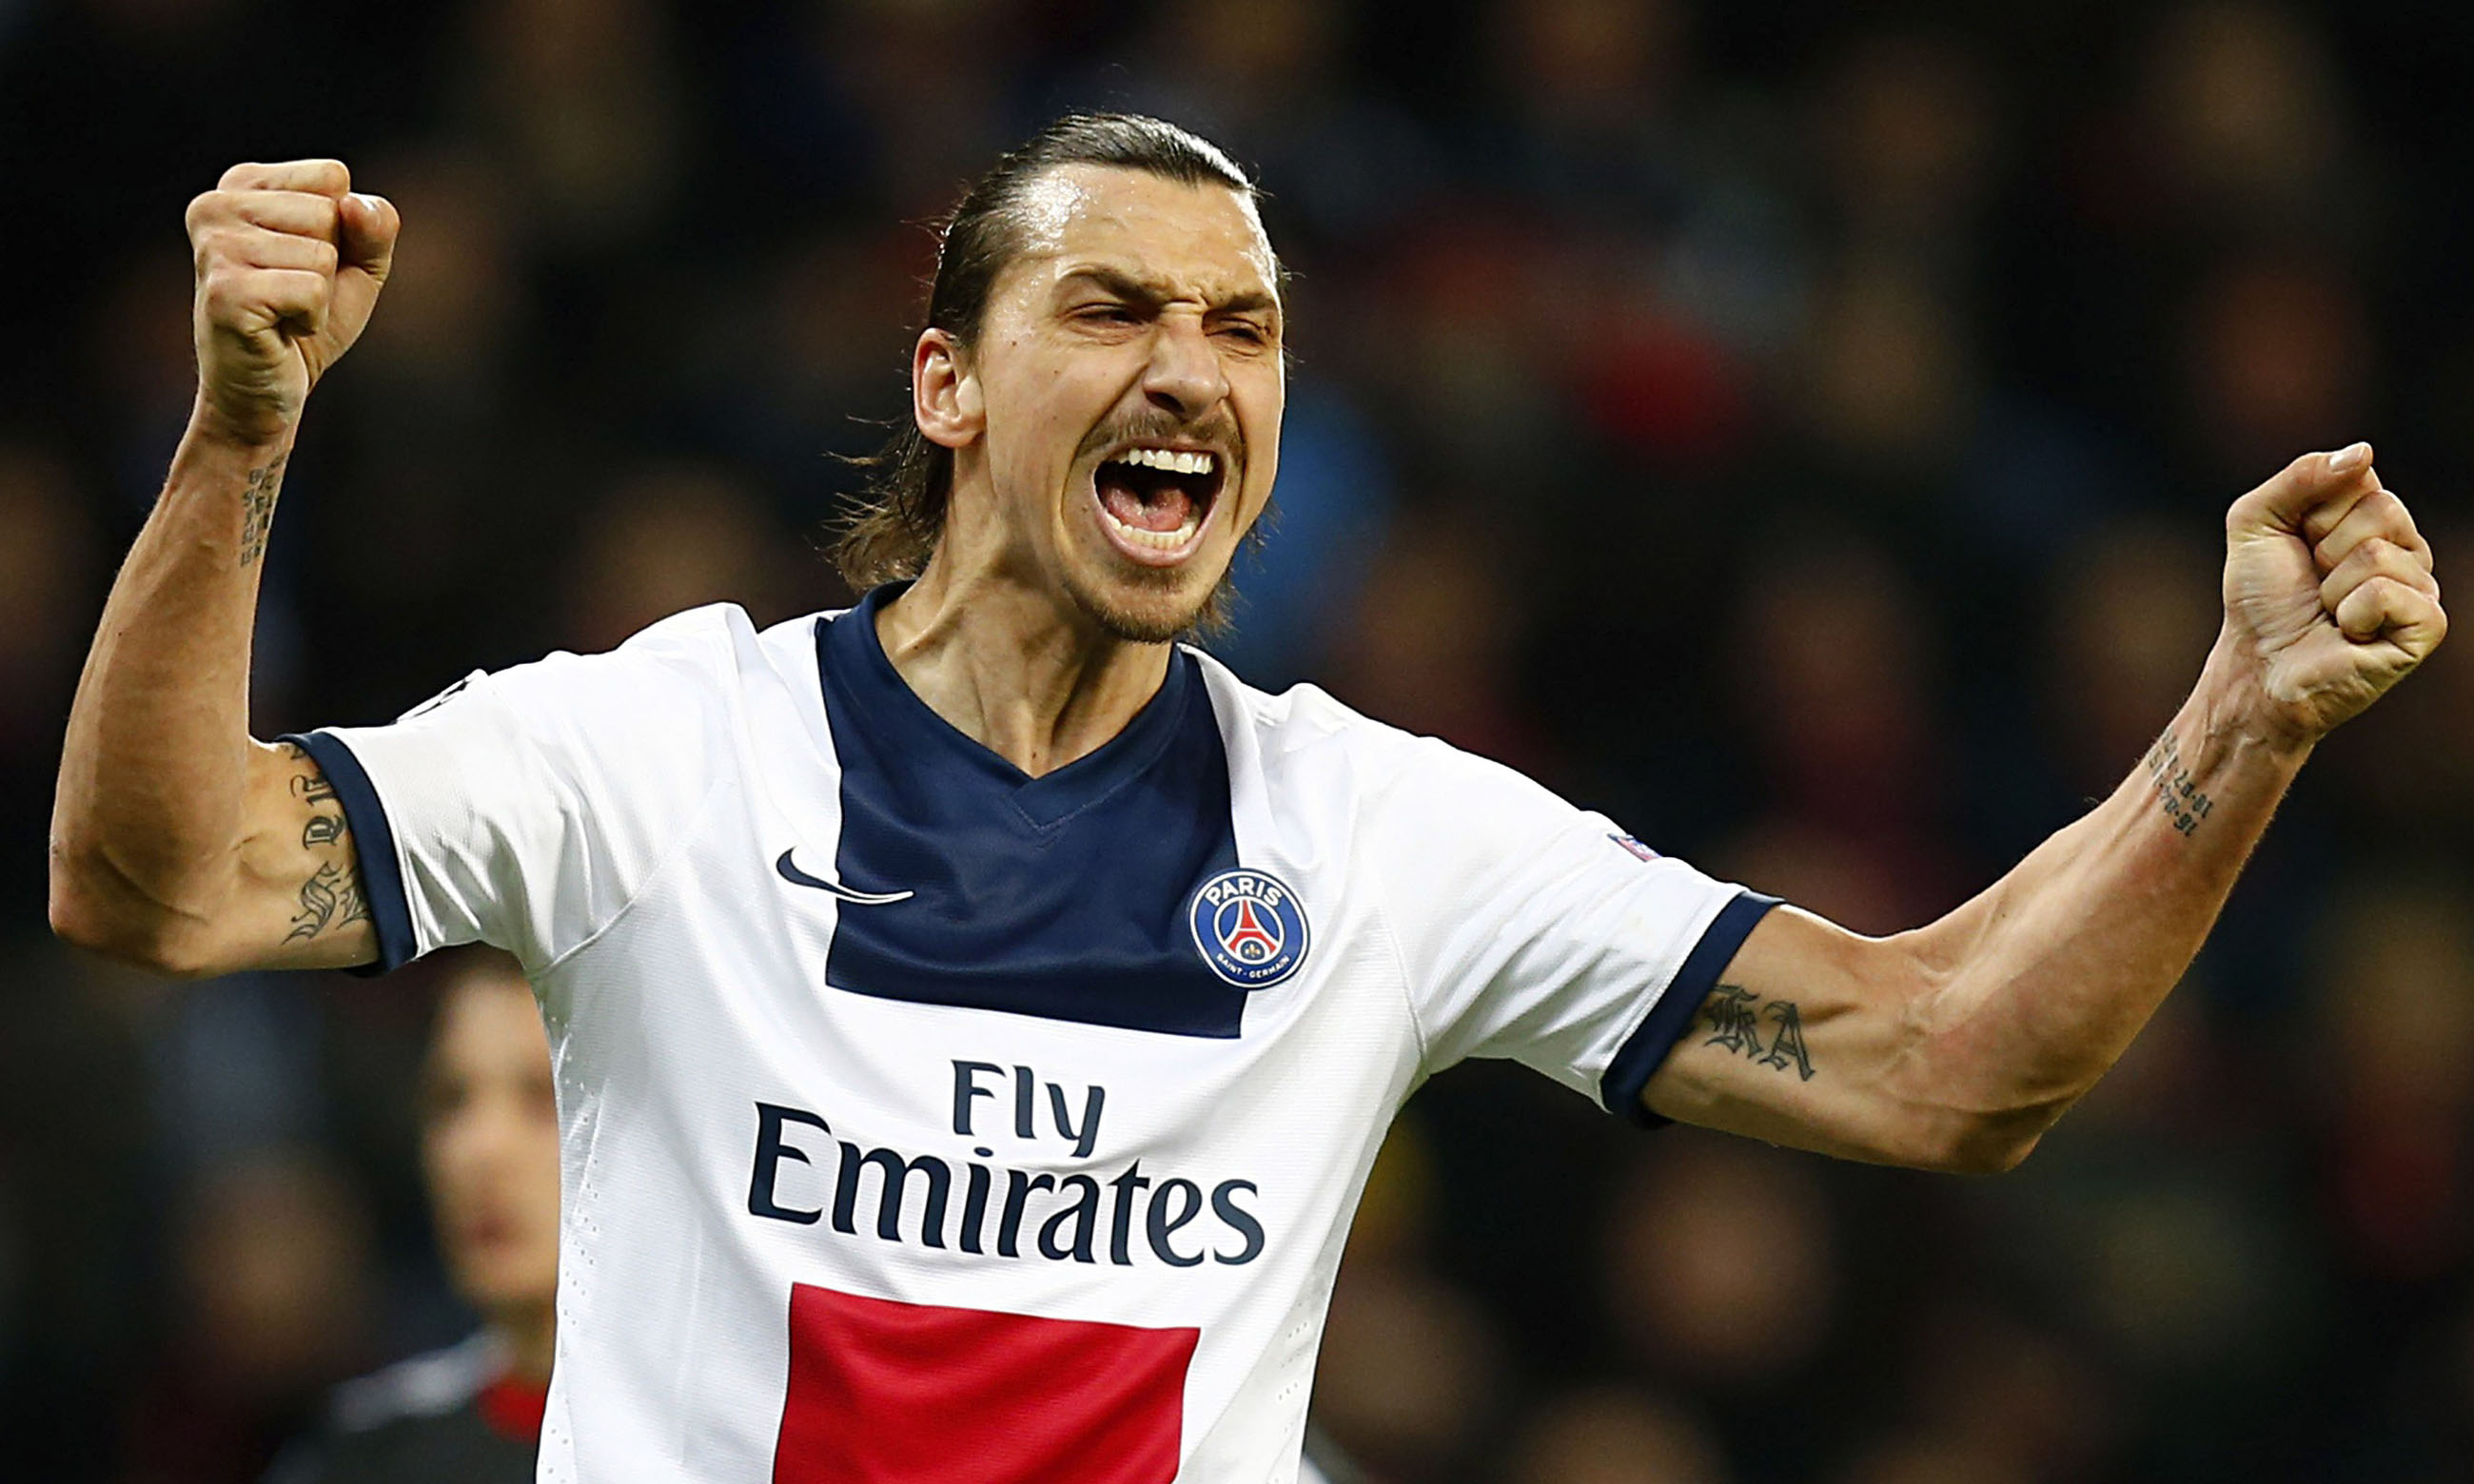 PSG: Top 10 Highest Paid Footballers In The World In 2014